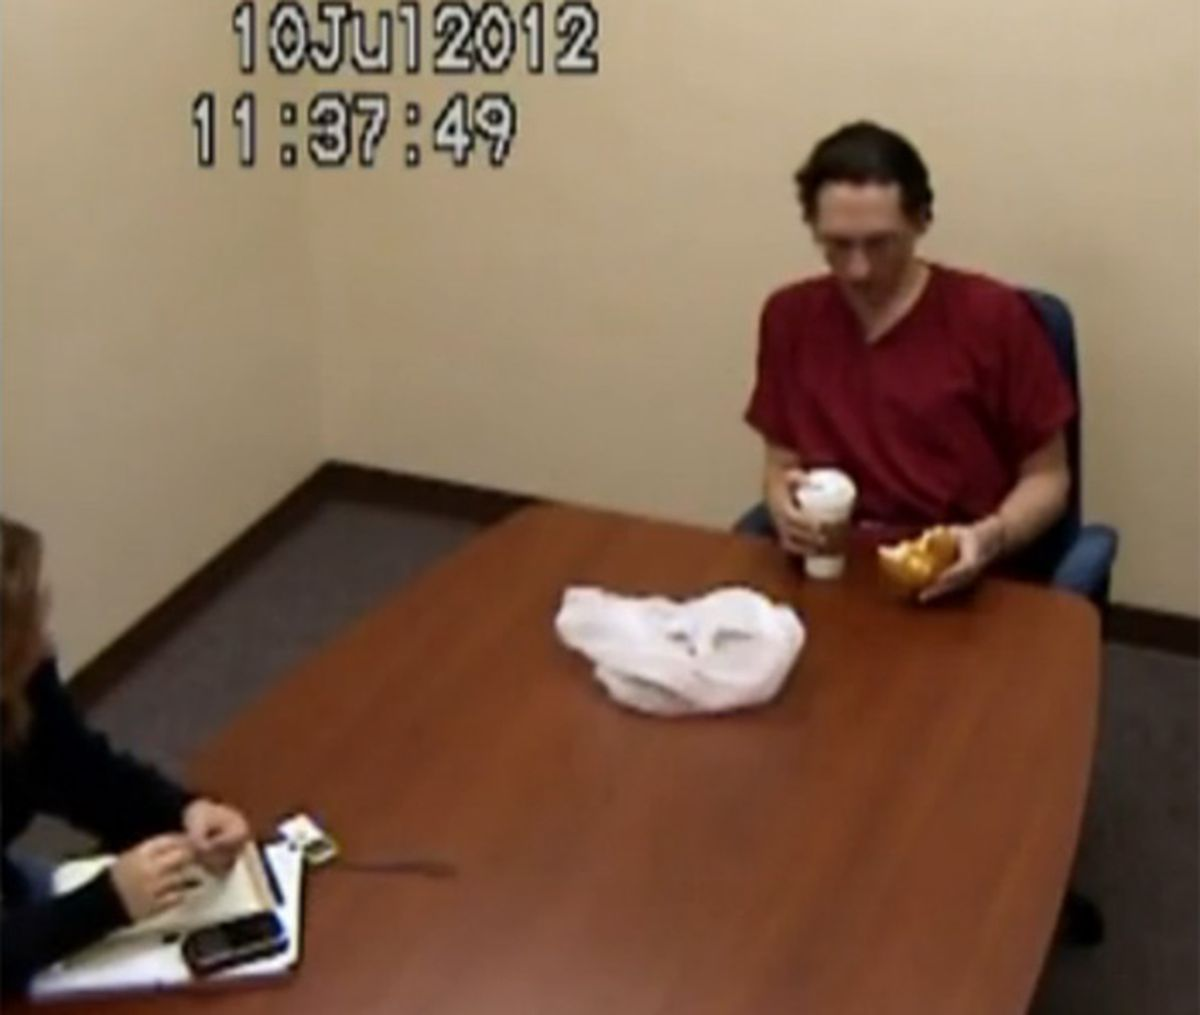 Israel Keyes is interviewed by the FBI on July 10, 2012. (FBI photo)